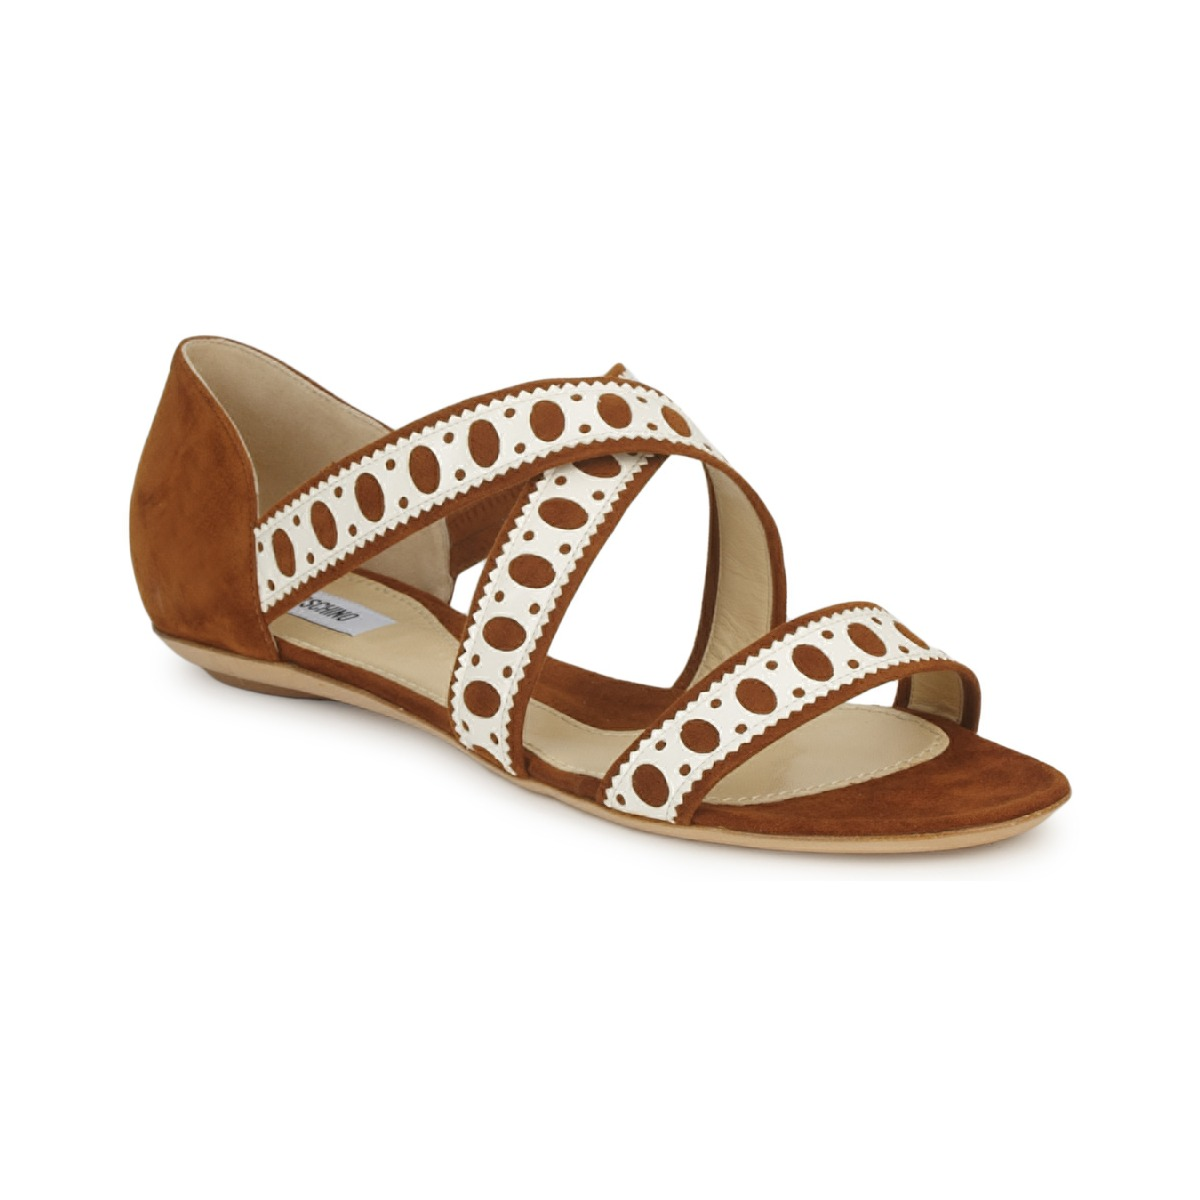 Sandale Moschino DELOS SAND Camel / Ivoire